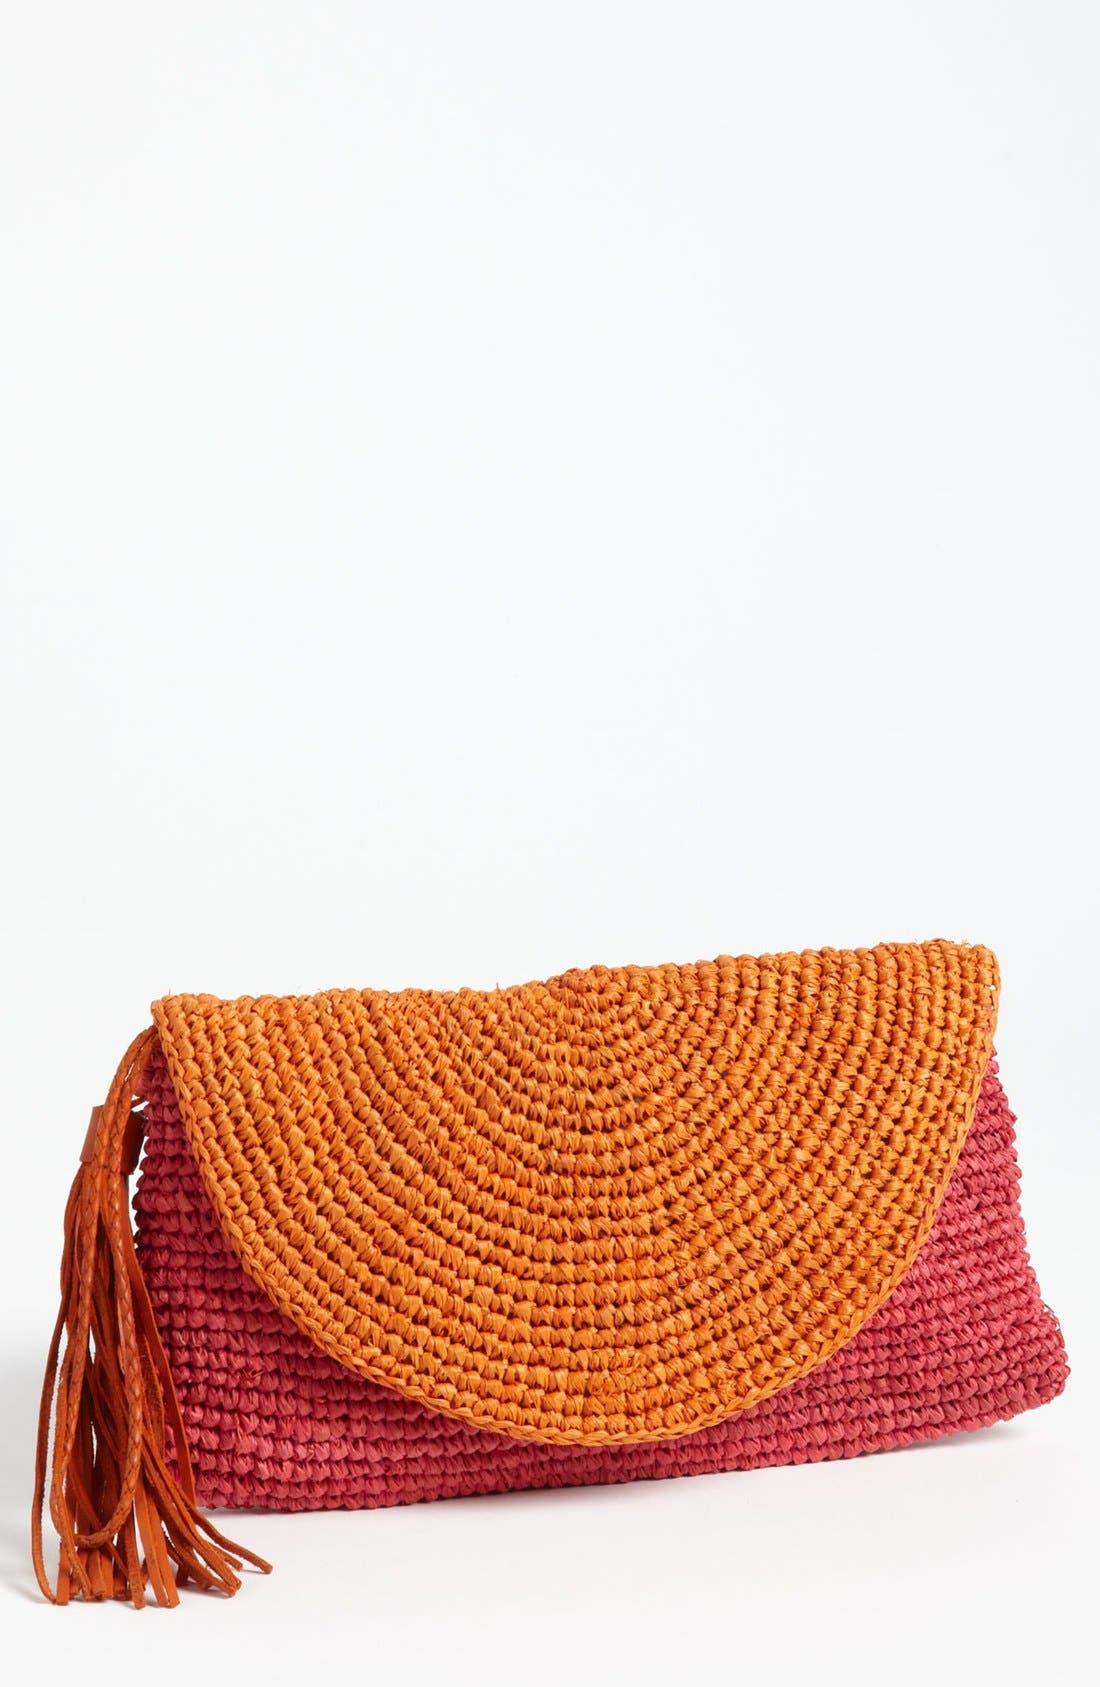 Alternate Image 1 Selected - Mar y Sol 'Camille' Raffia Clutch